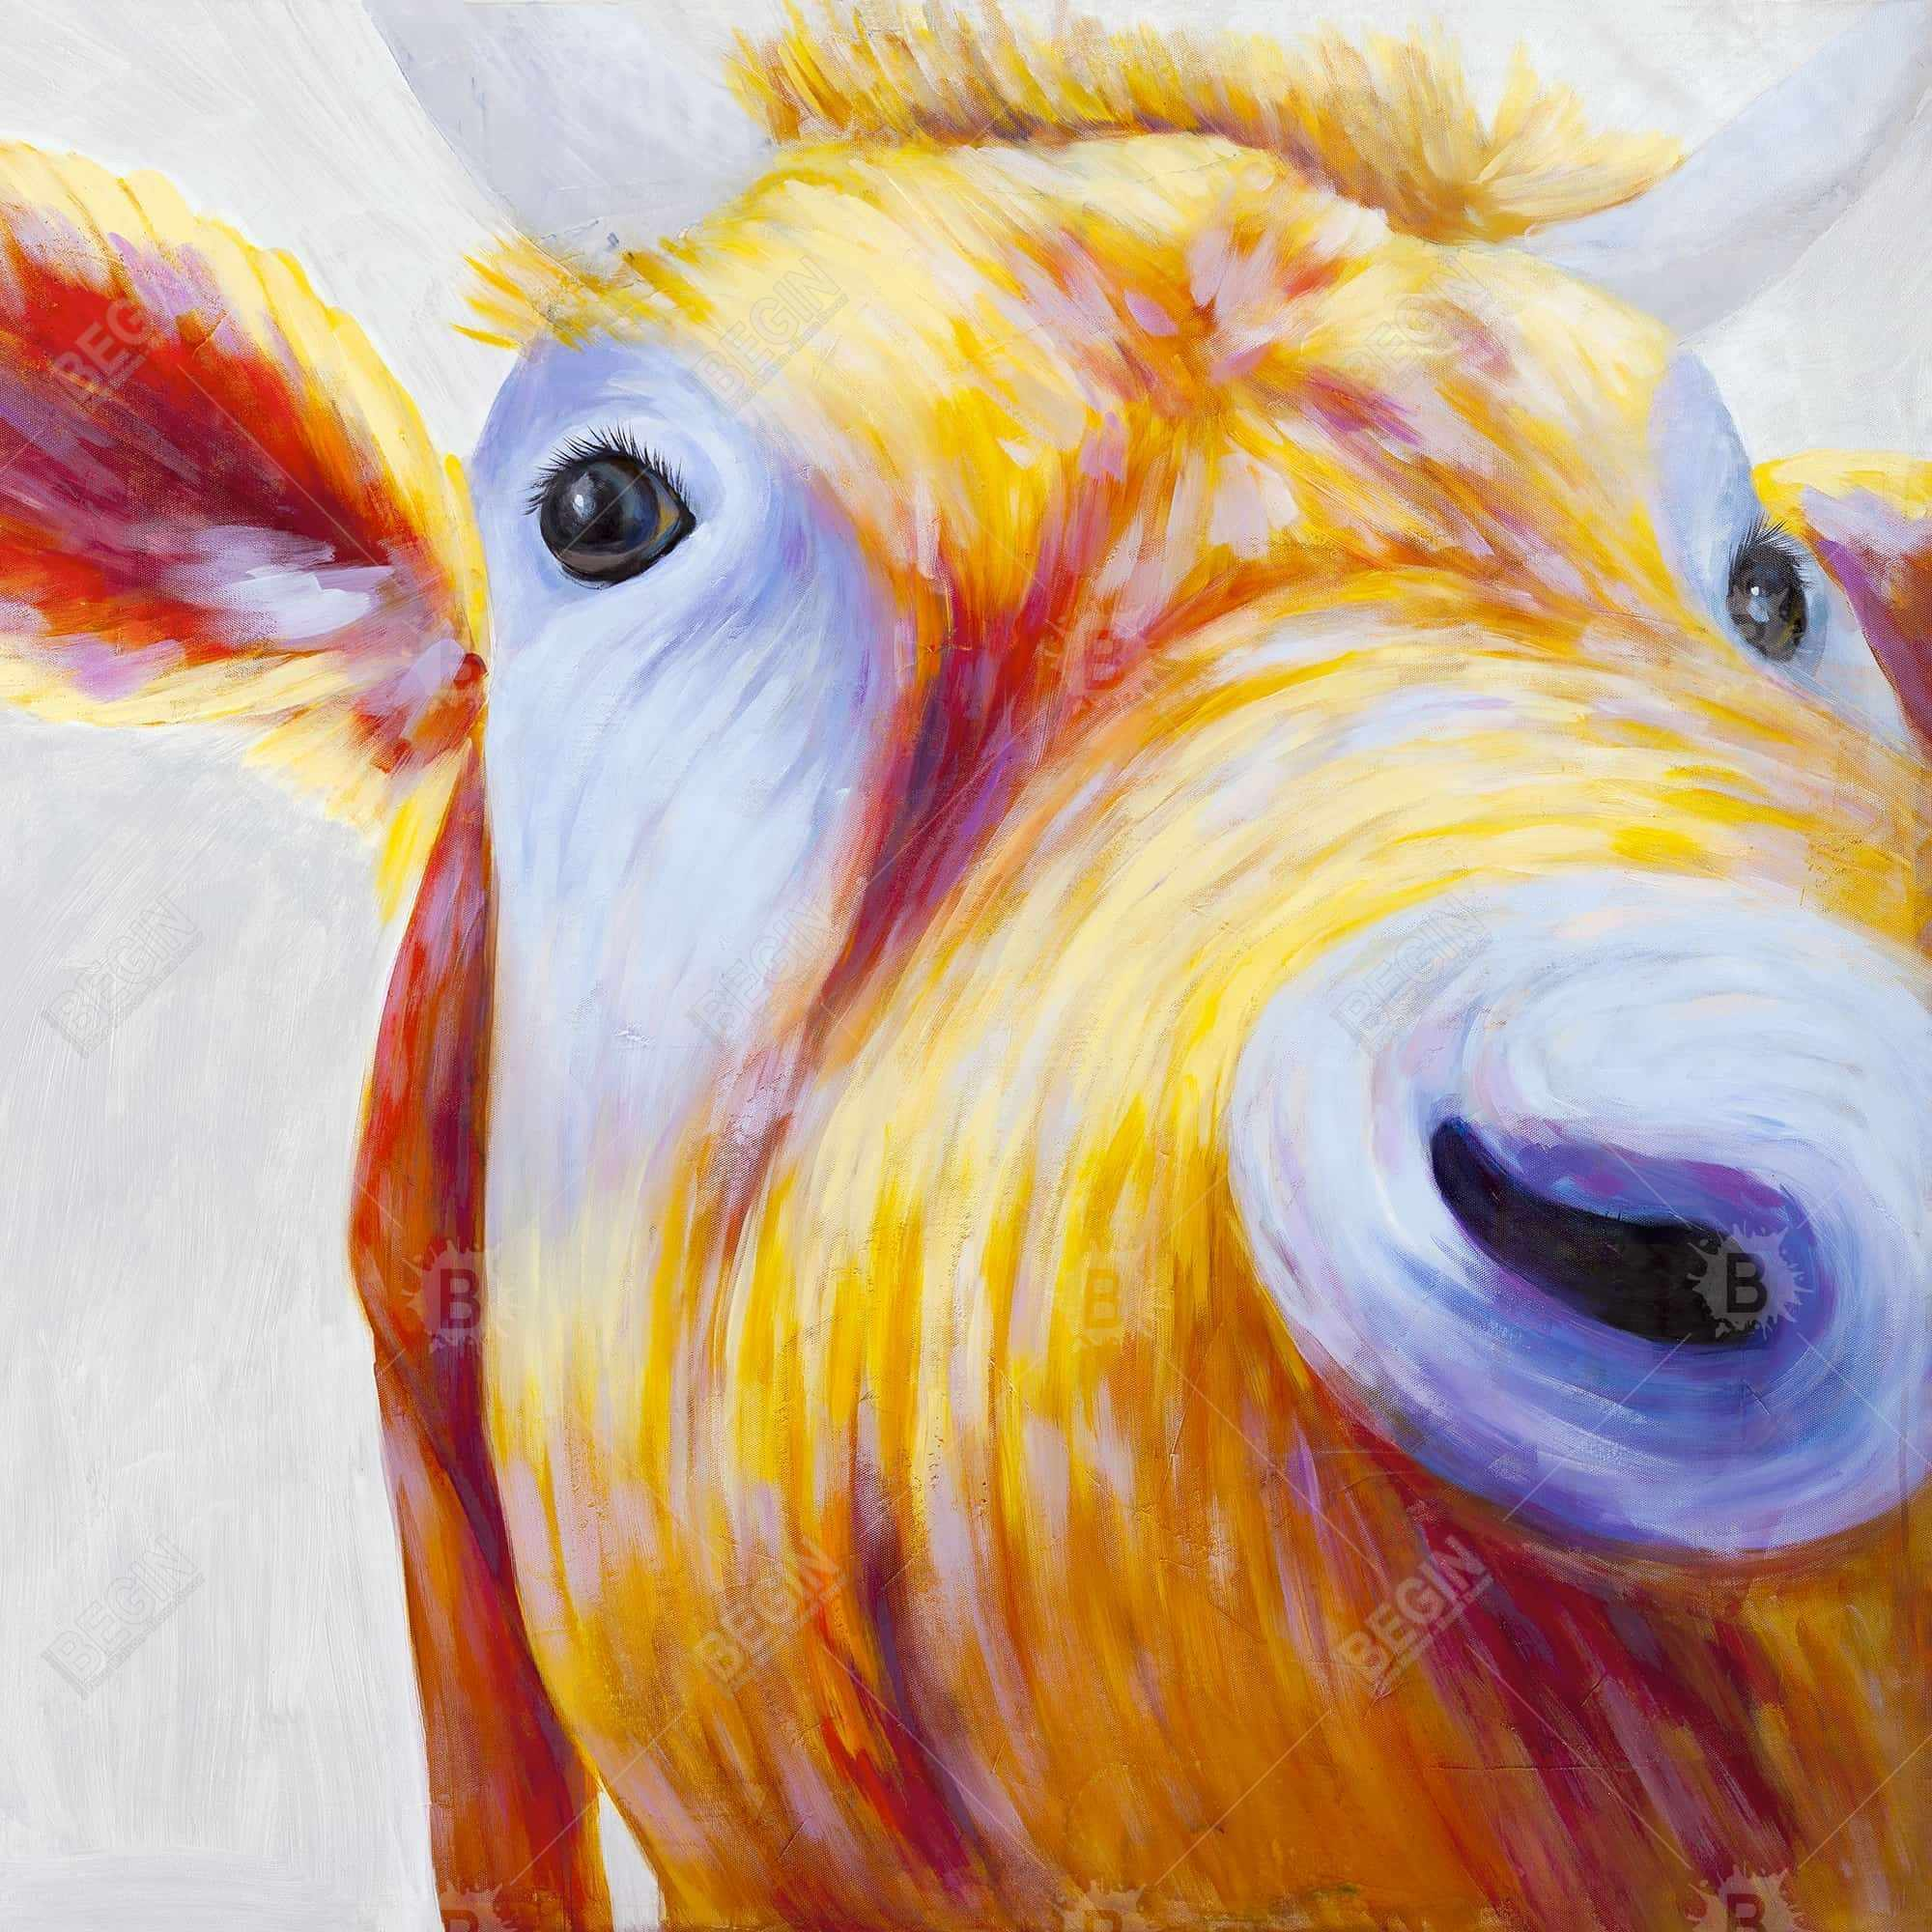 Closeup of a colorful country cow